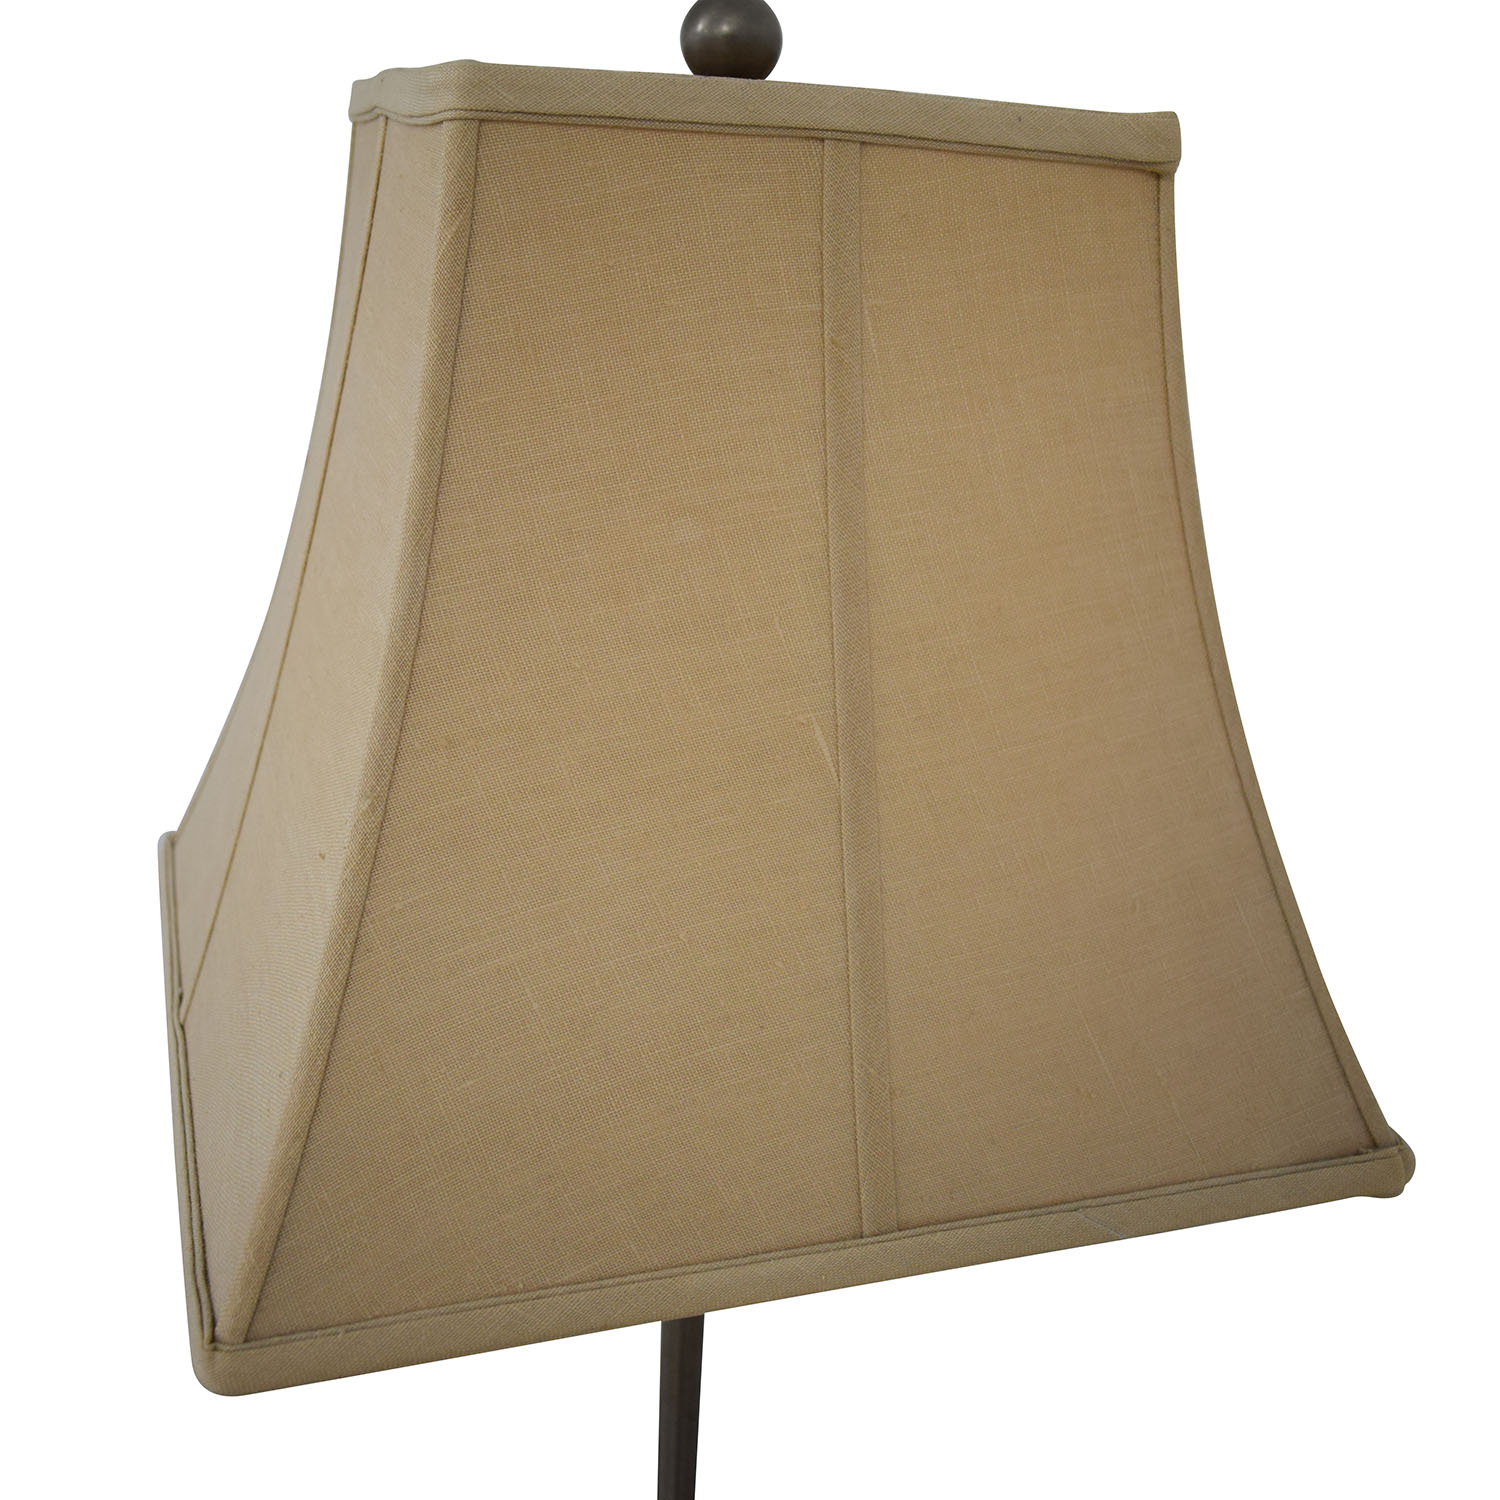 Pottery Barn Pottery Barn Table Lamp for sale